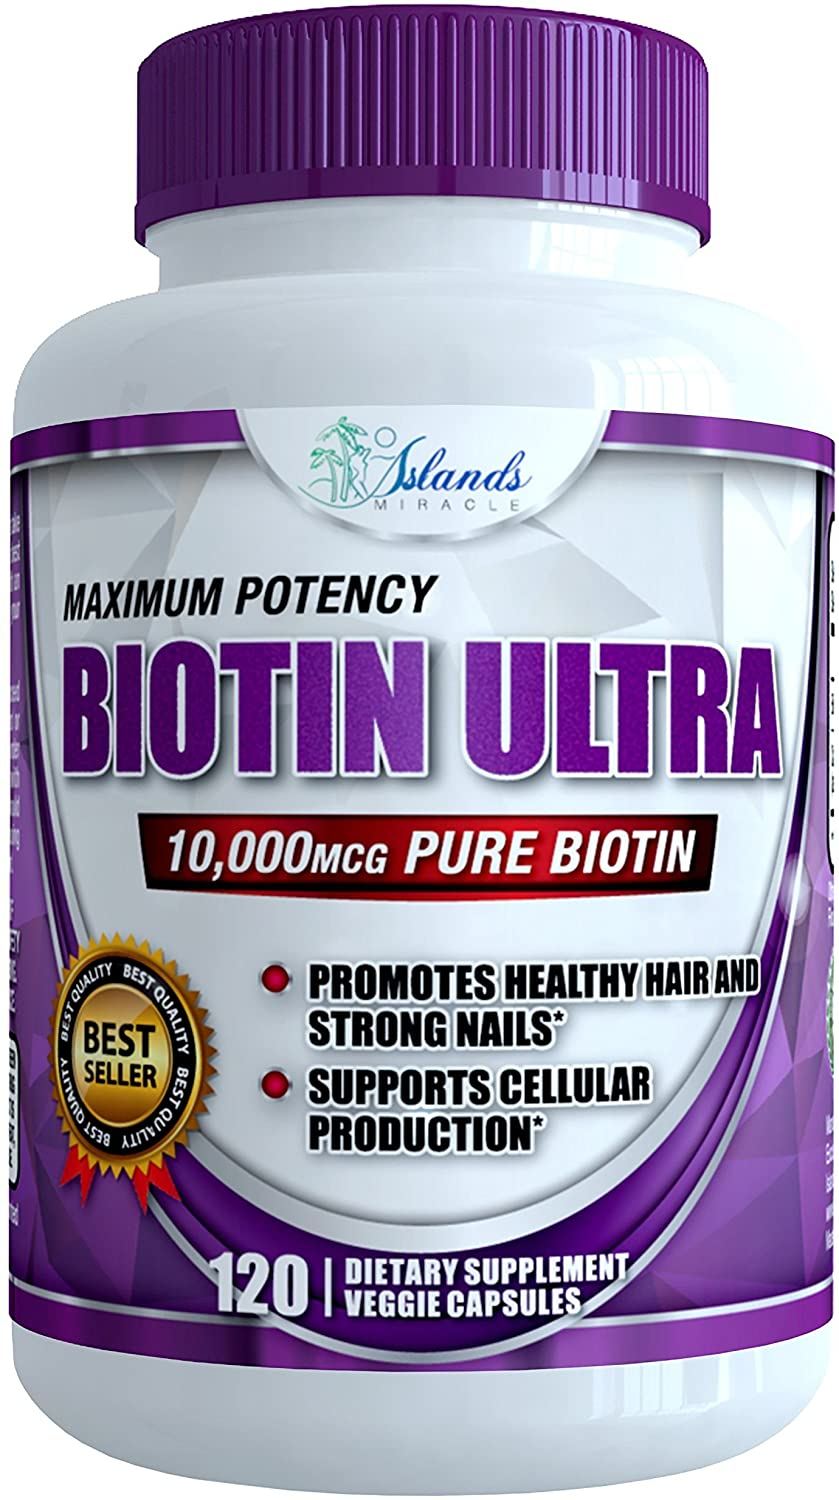 Benefits Of Biotin For Hair Growth